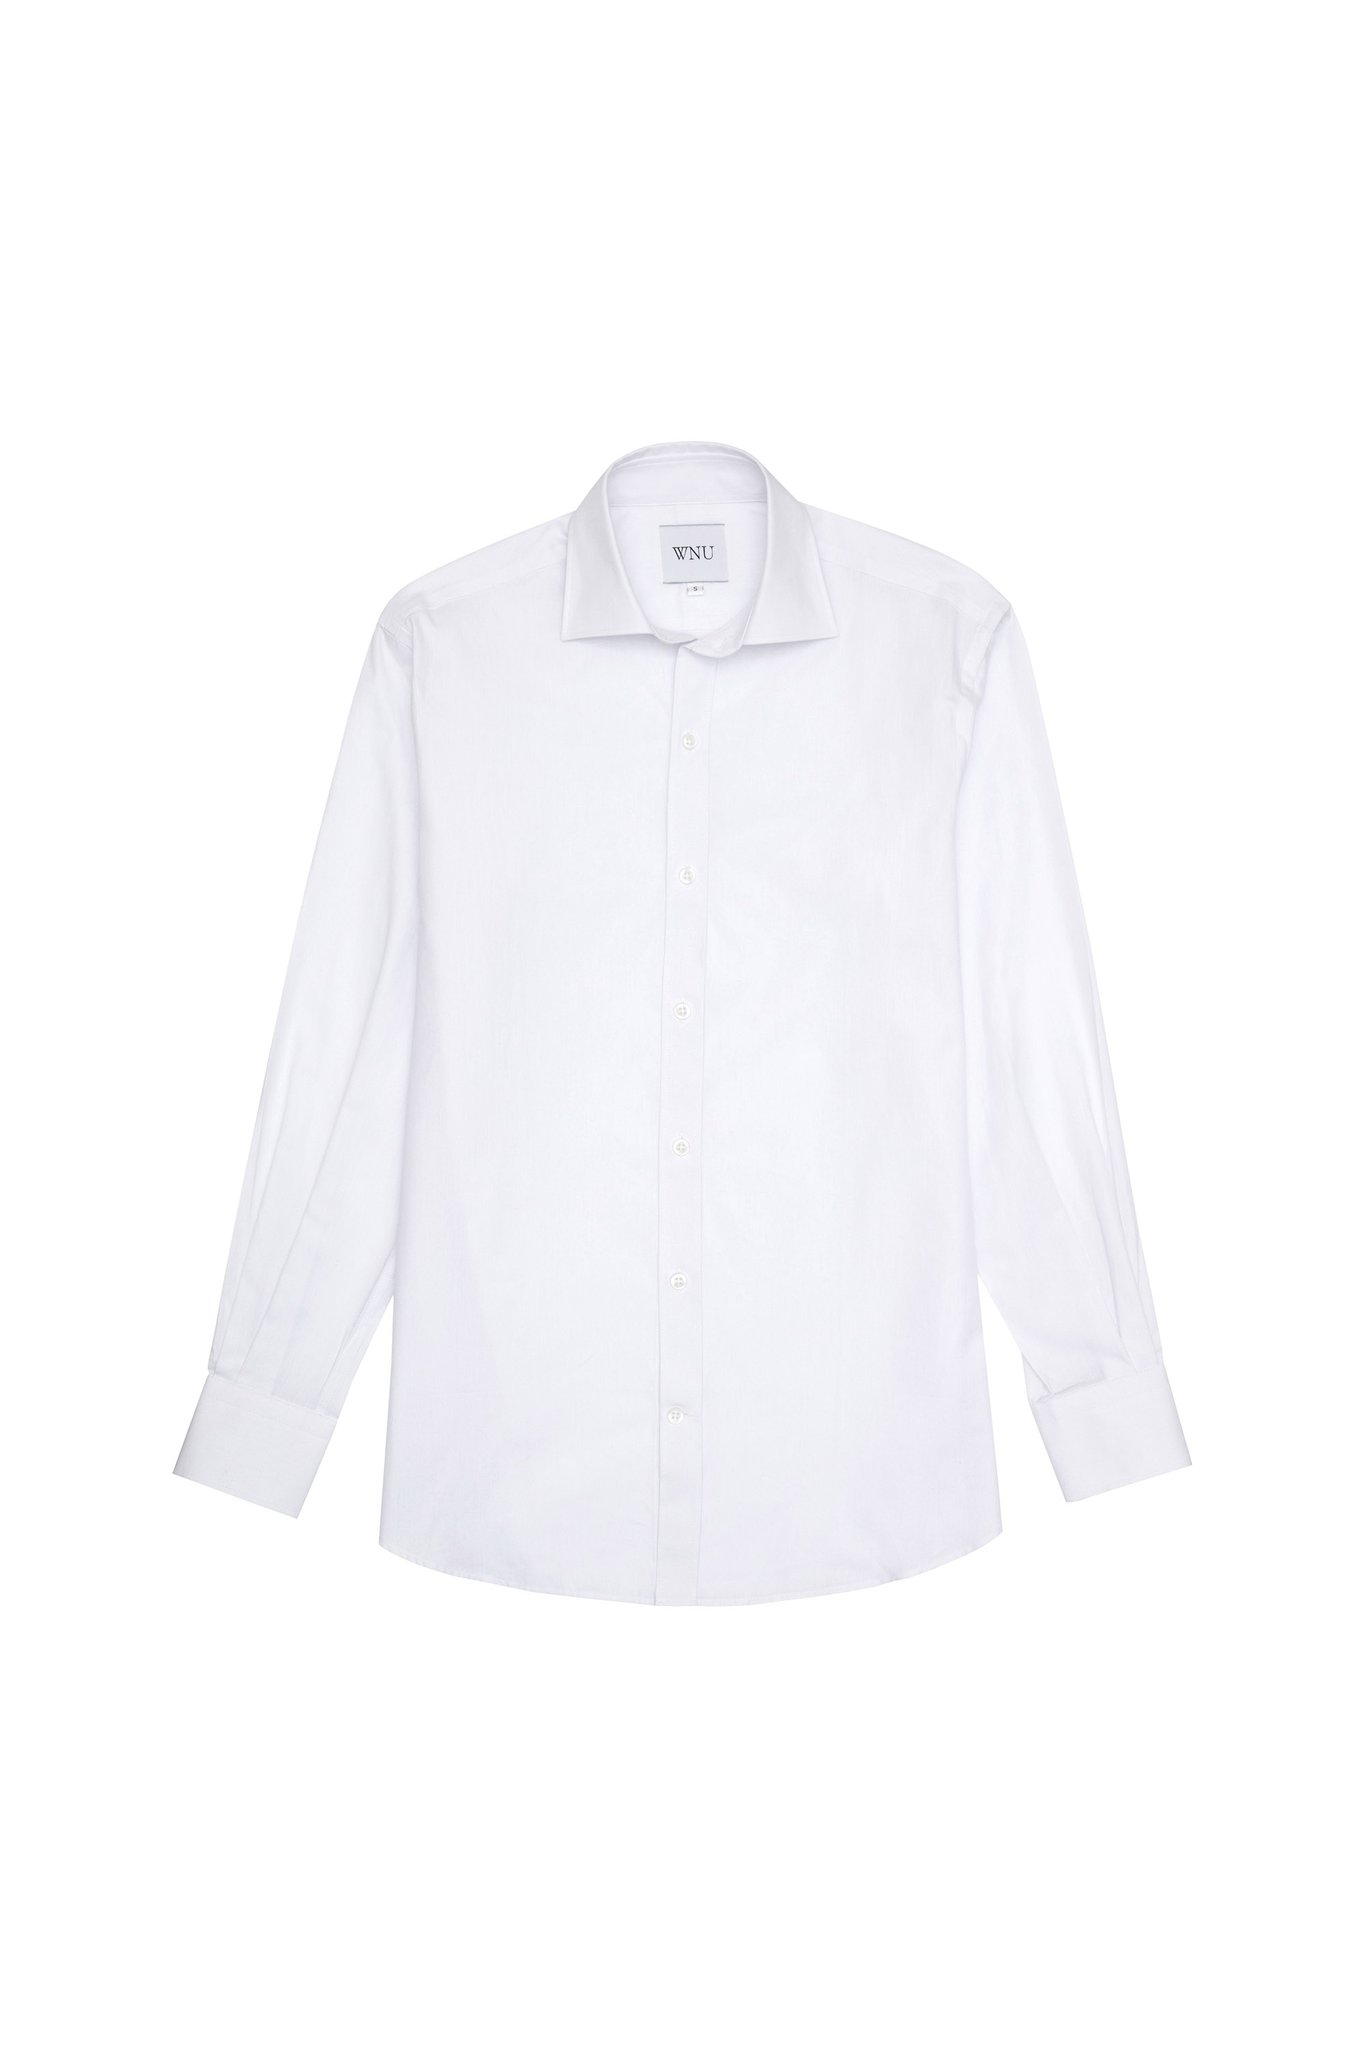 4. White shirt, £80 by With Nothing Underneath